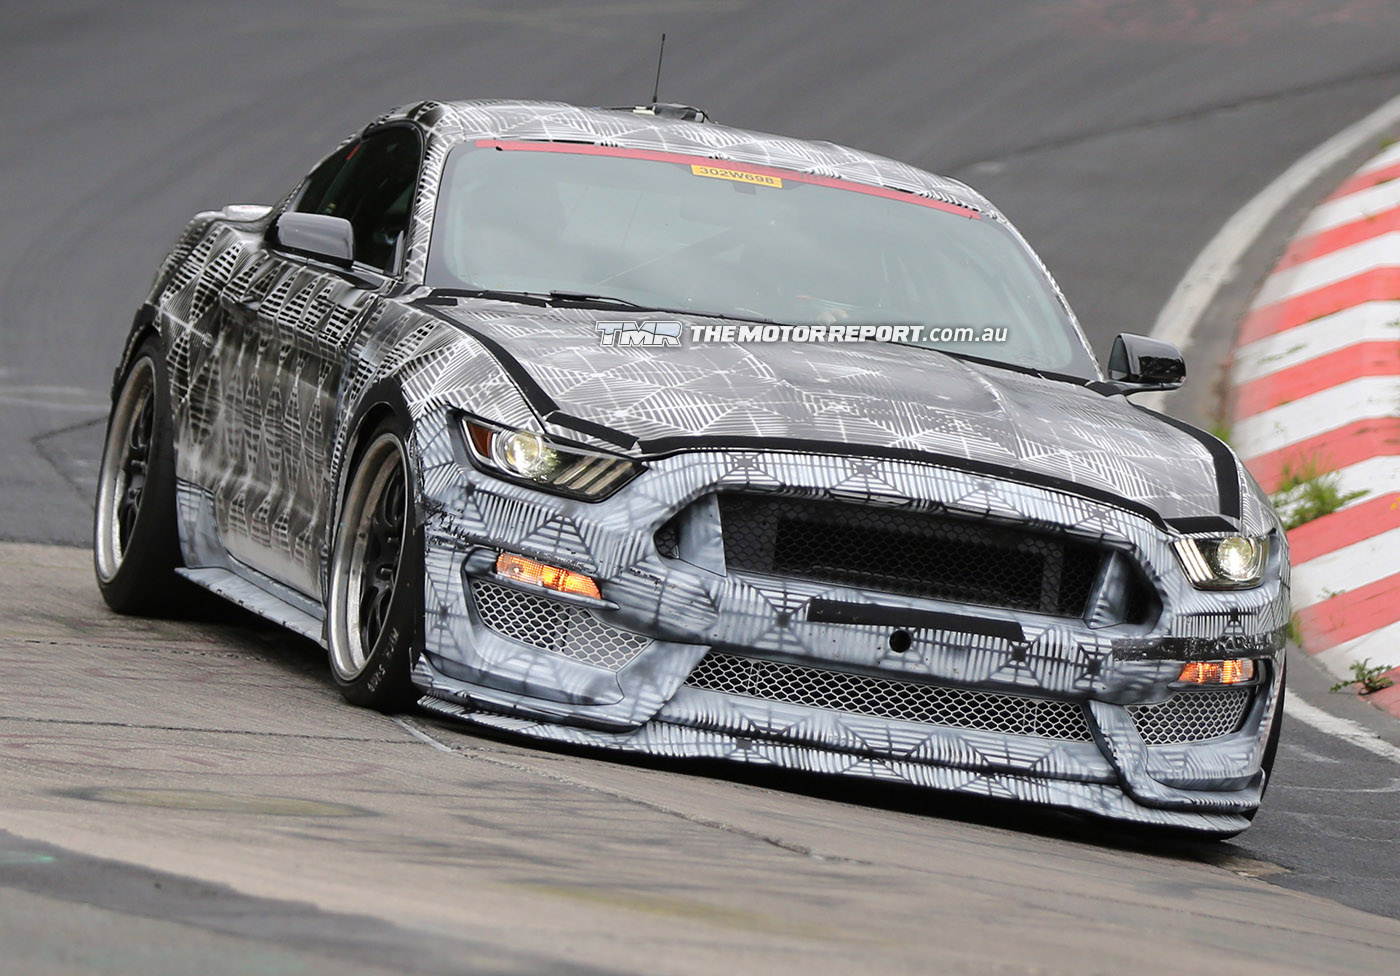 Ford Mustang SVT Spied Testing, Previews Shelby GT500 Replacement